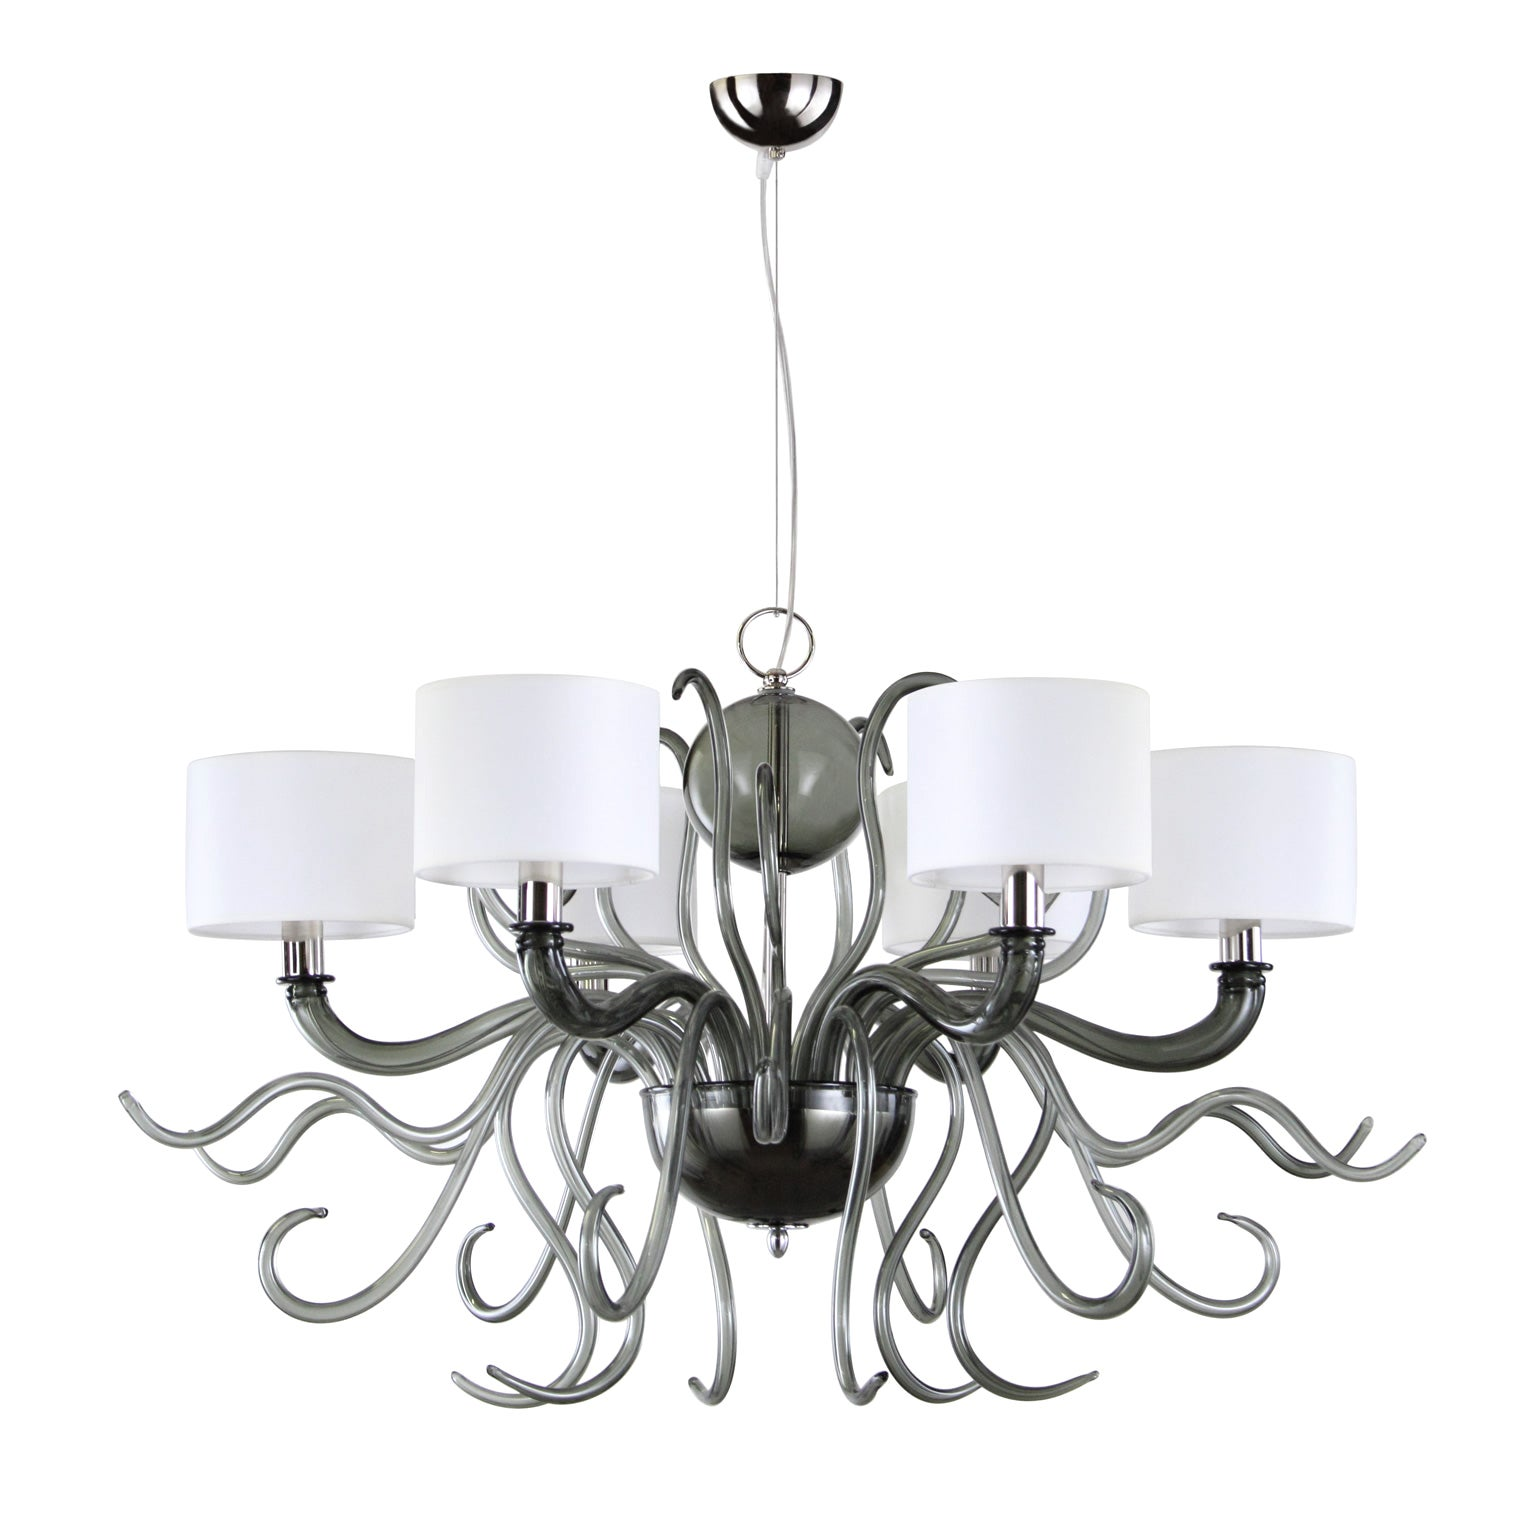 21st Century Chandelier 6arms Grey Murano Glass White Lampshades by Multiforme